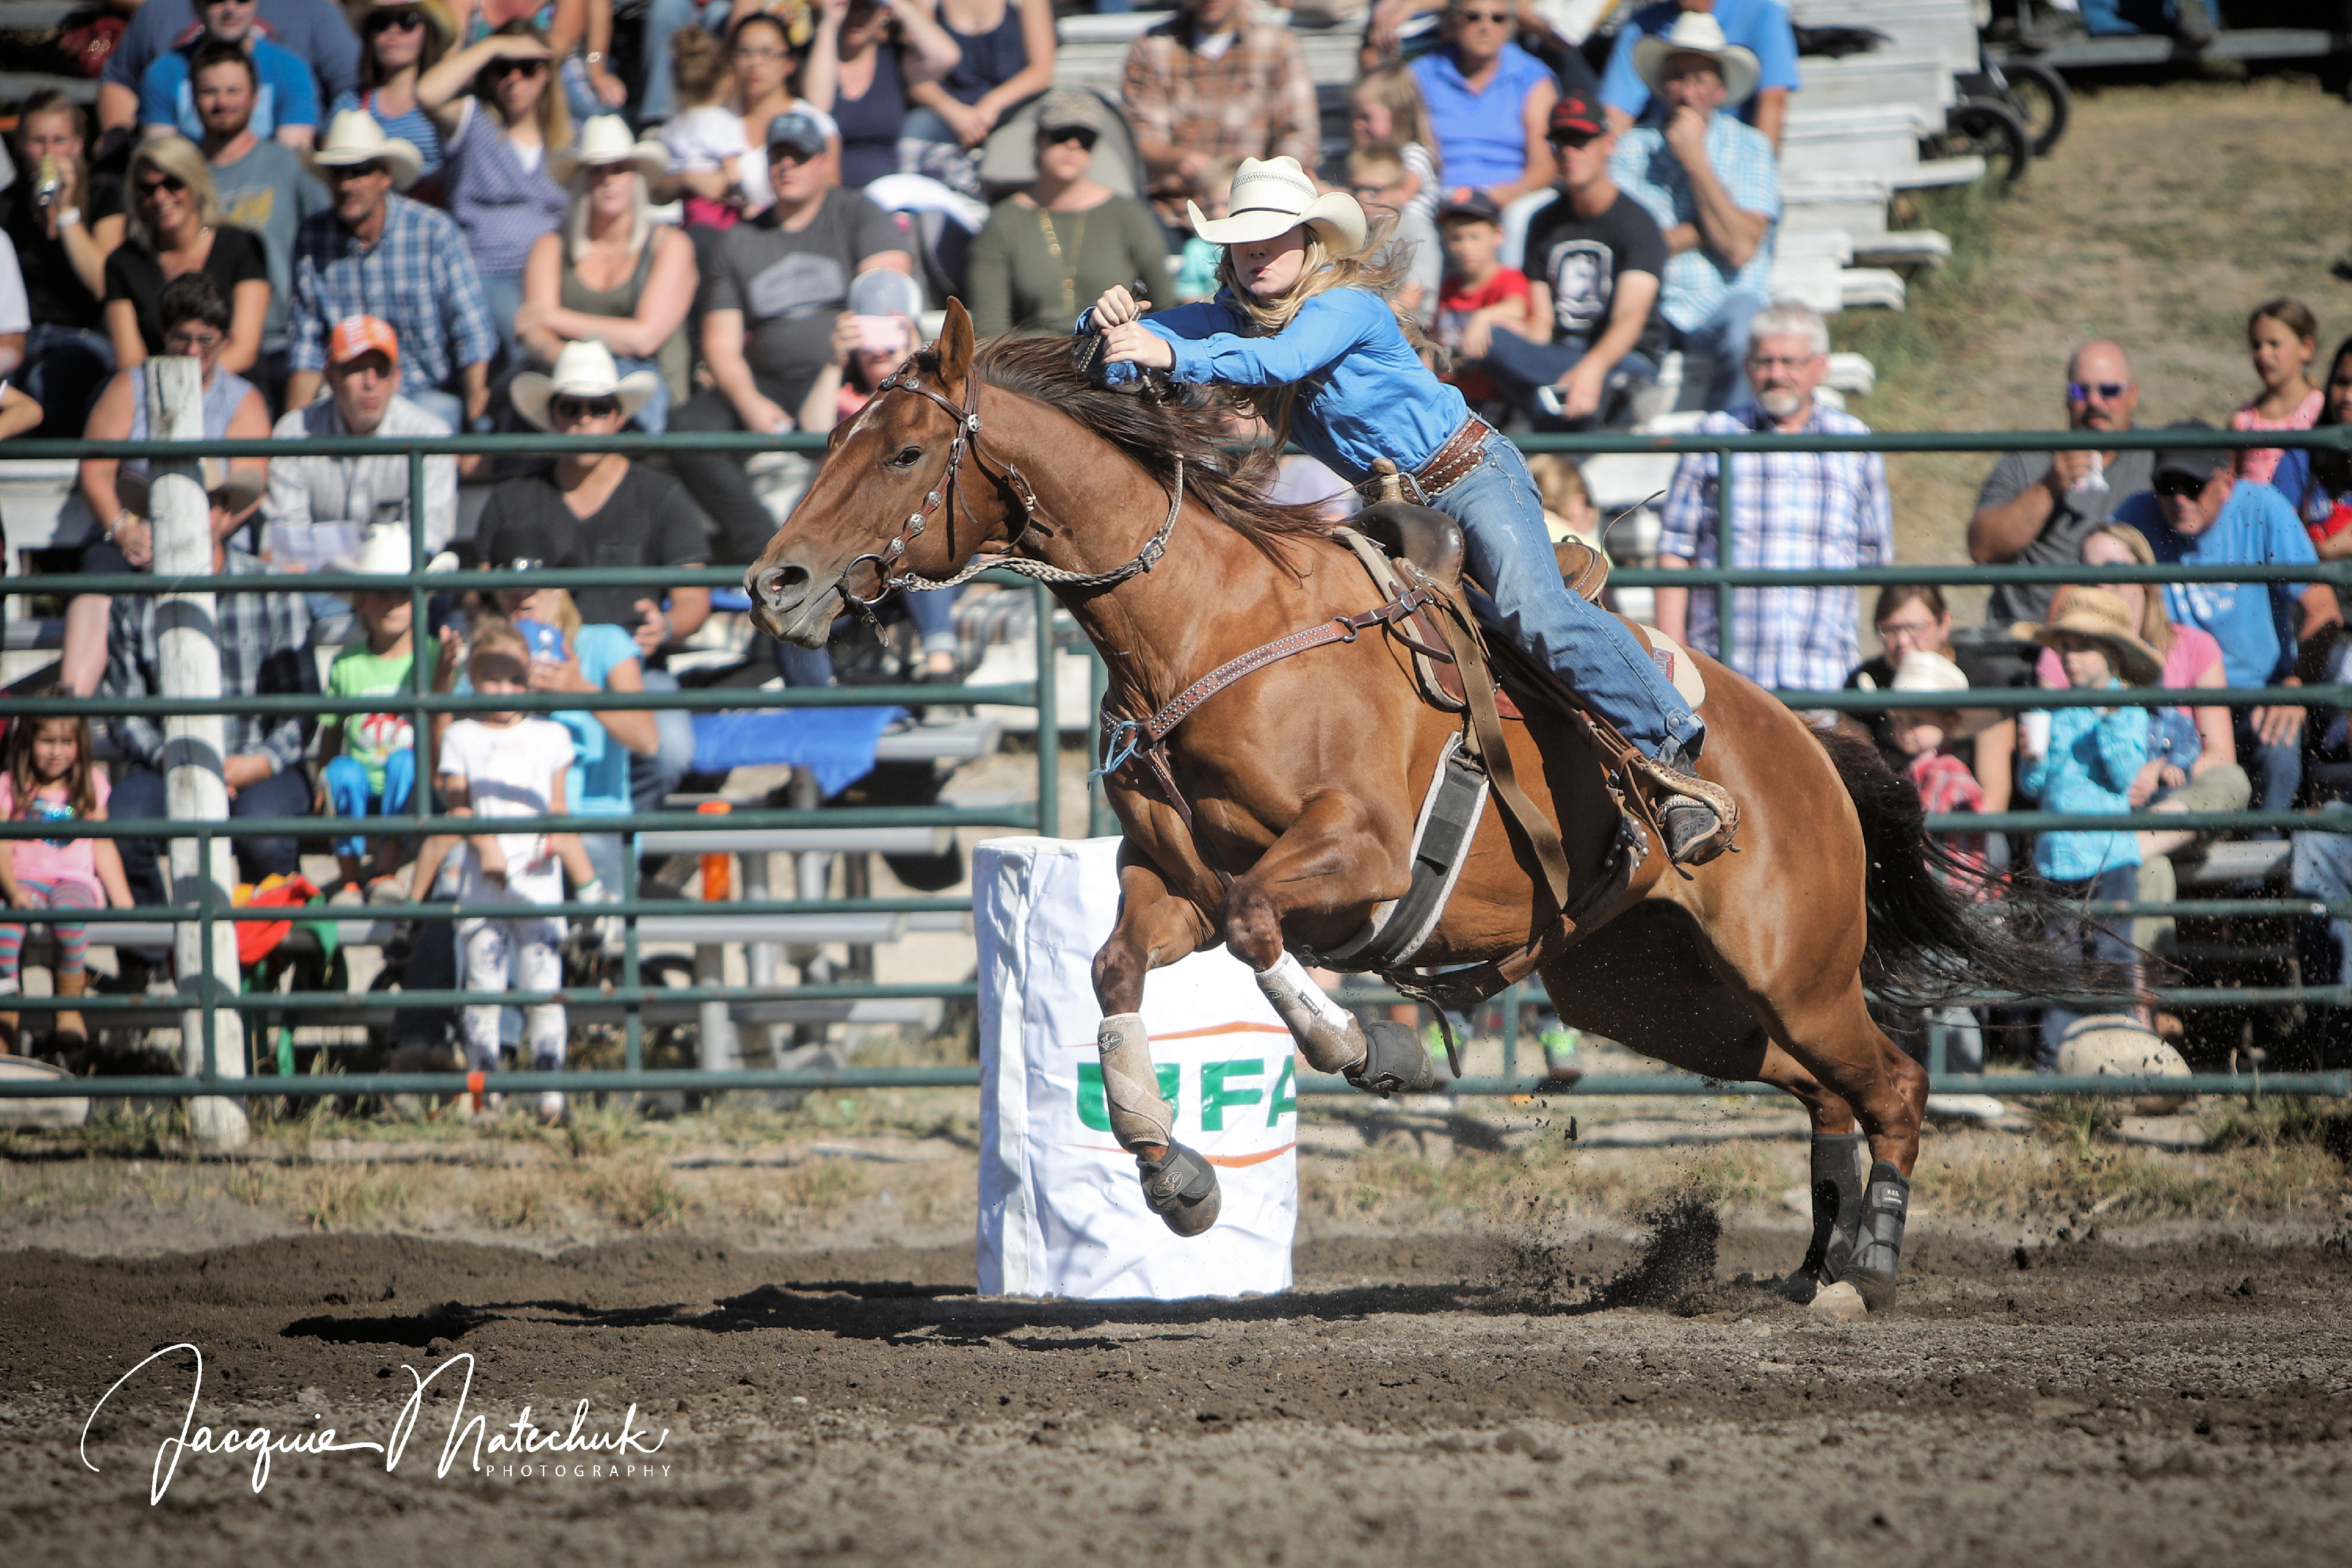 Women's Barrel Racing